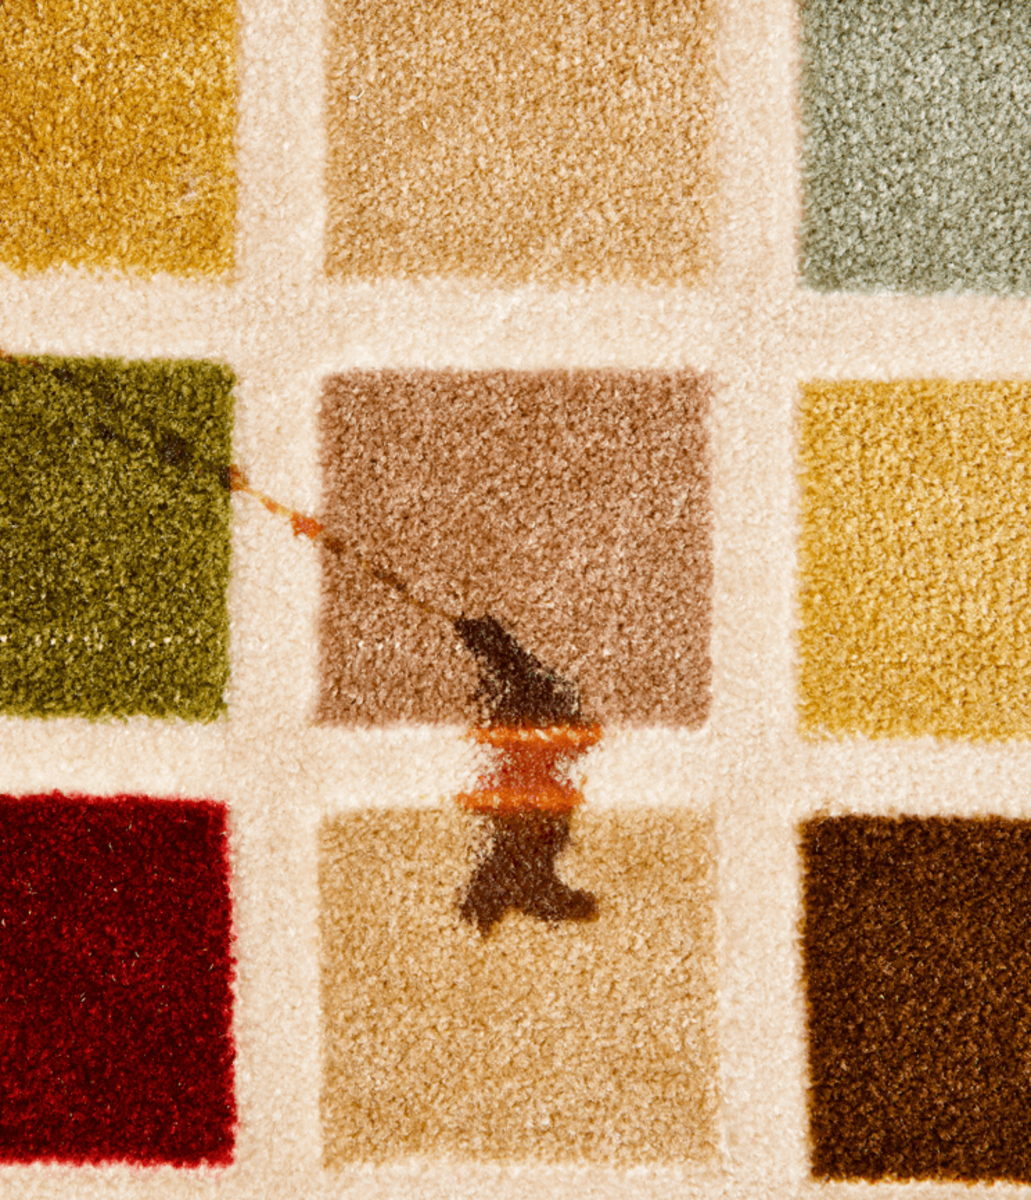 Pets and carpets do not often go well together.